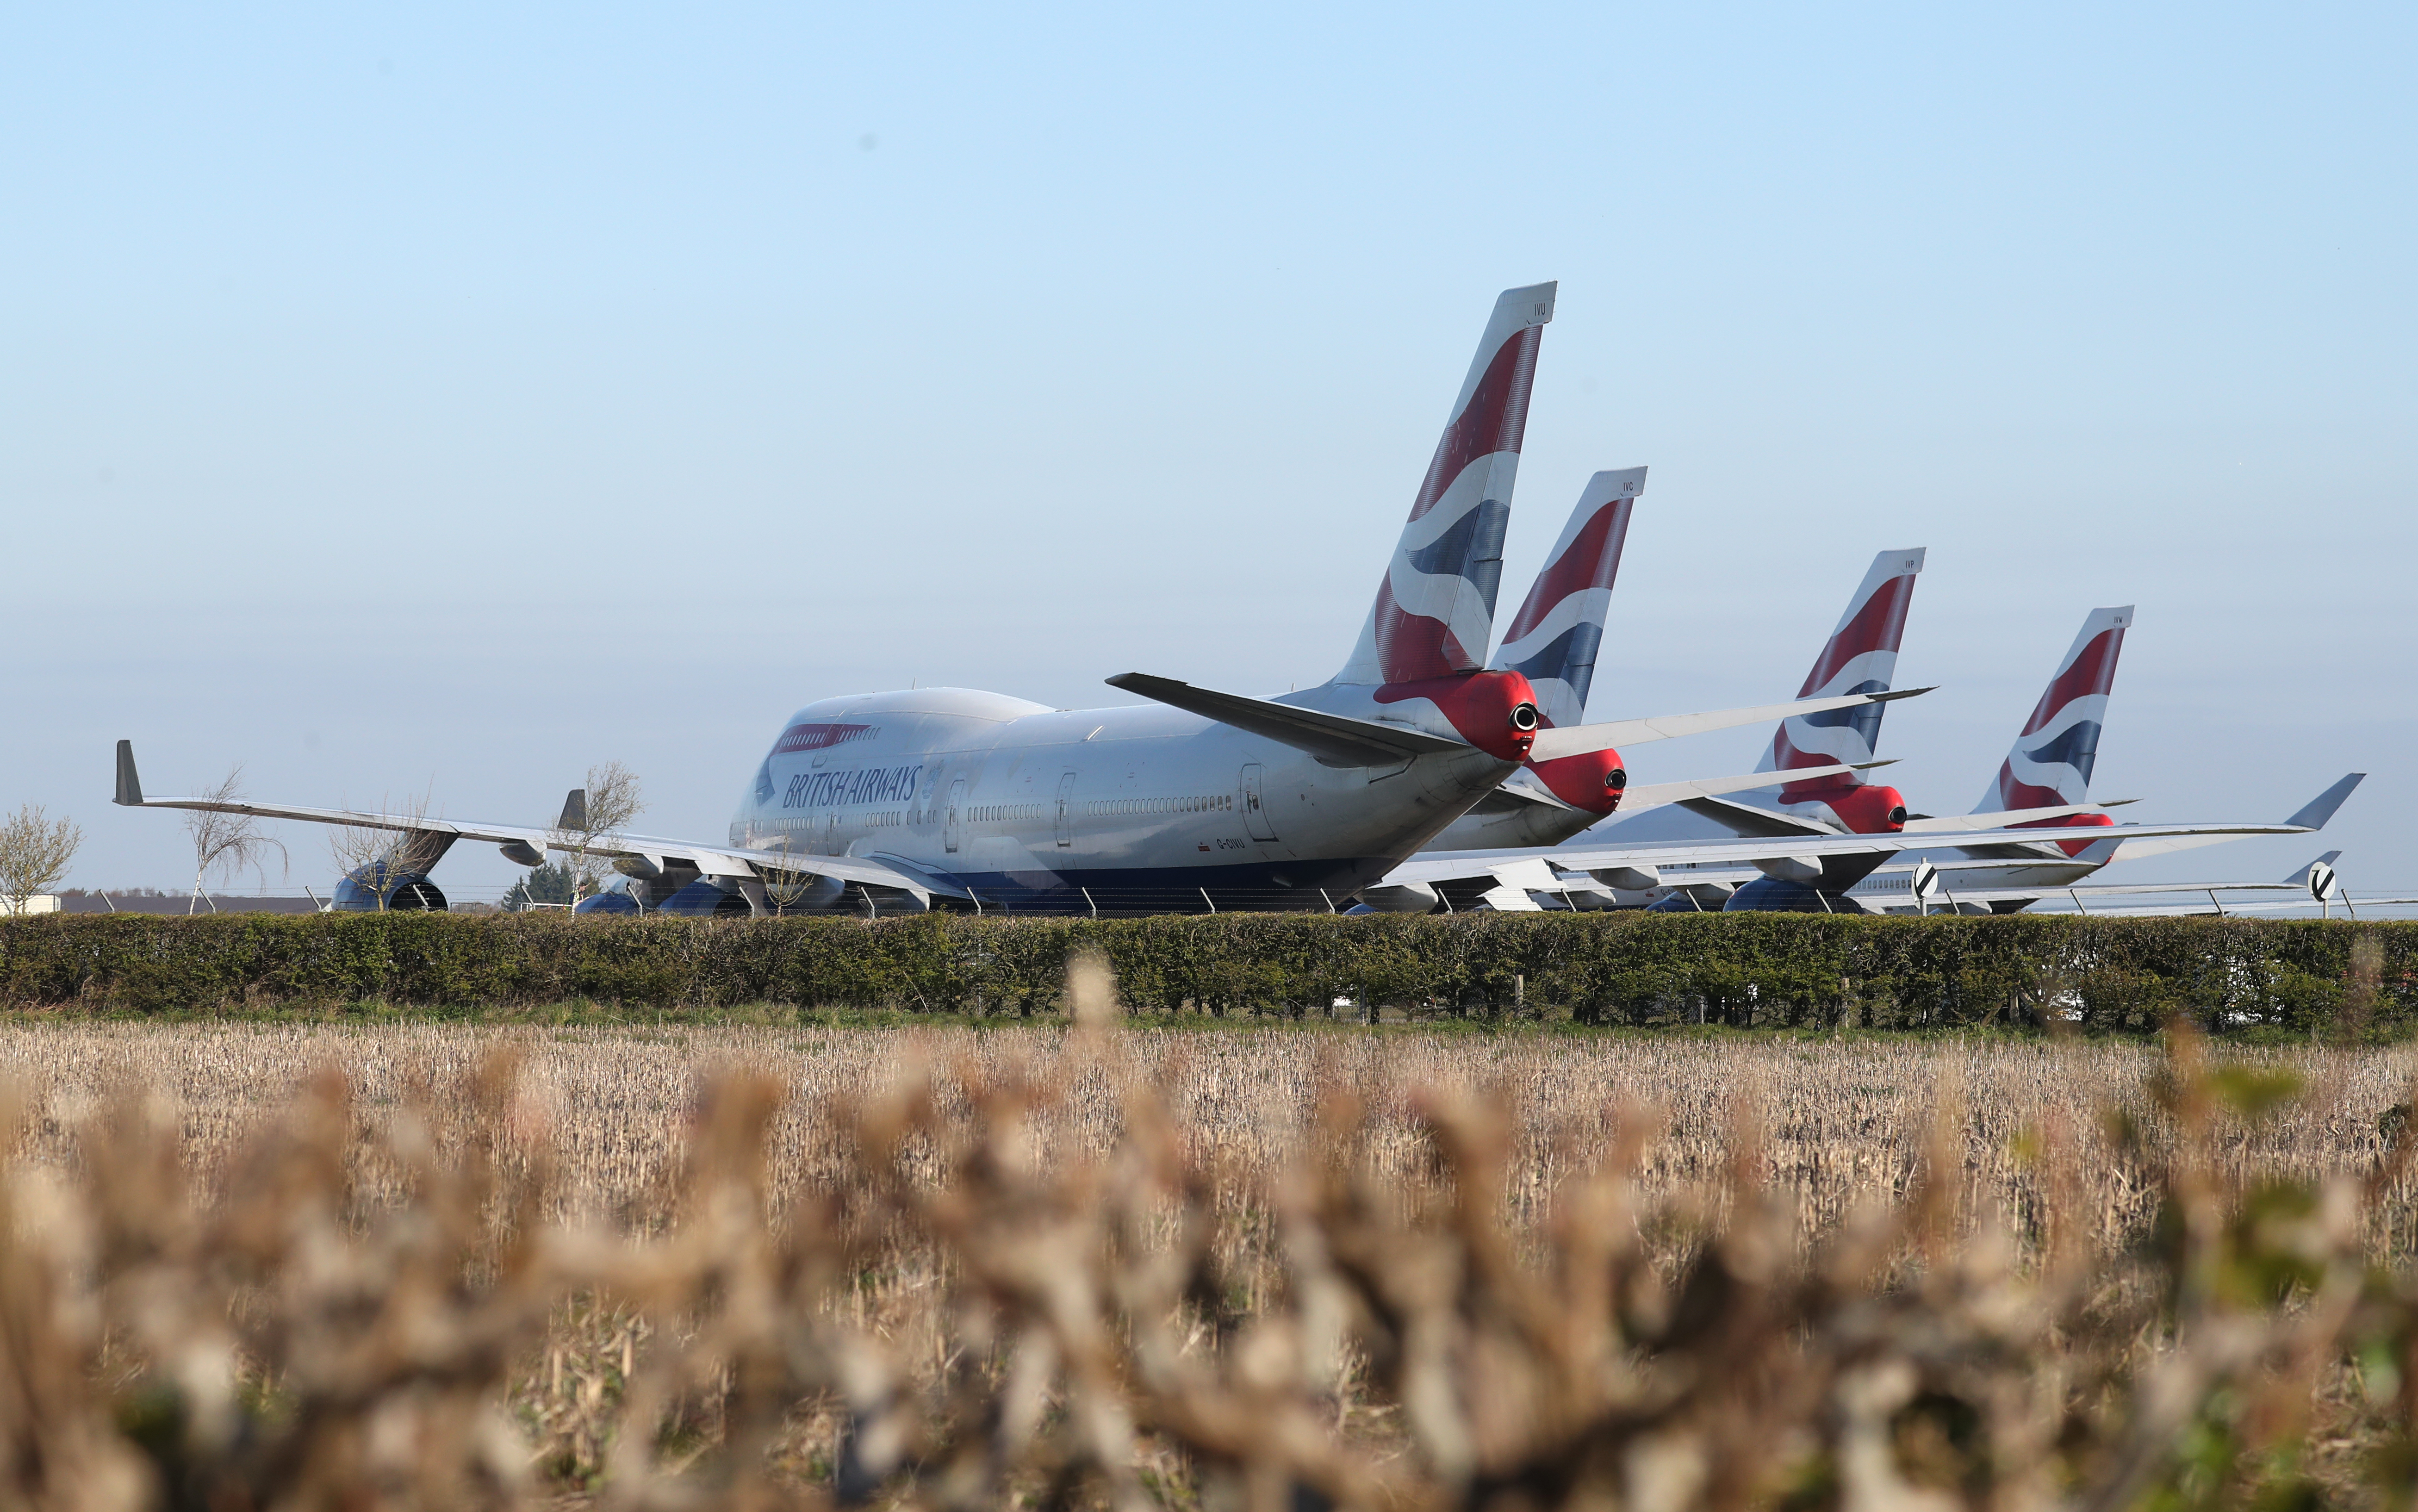 British Airways Boeing 747 aircraft parked at Bournemouth airport on April 1, 2020 after the airline reduced flights amid travel restrictions and a huge drop in demand as a result of the coronavirus pandemic.